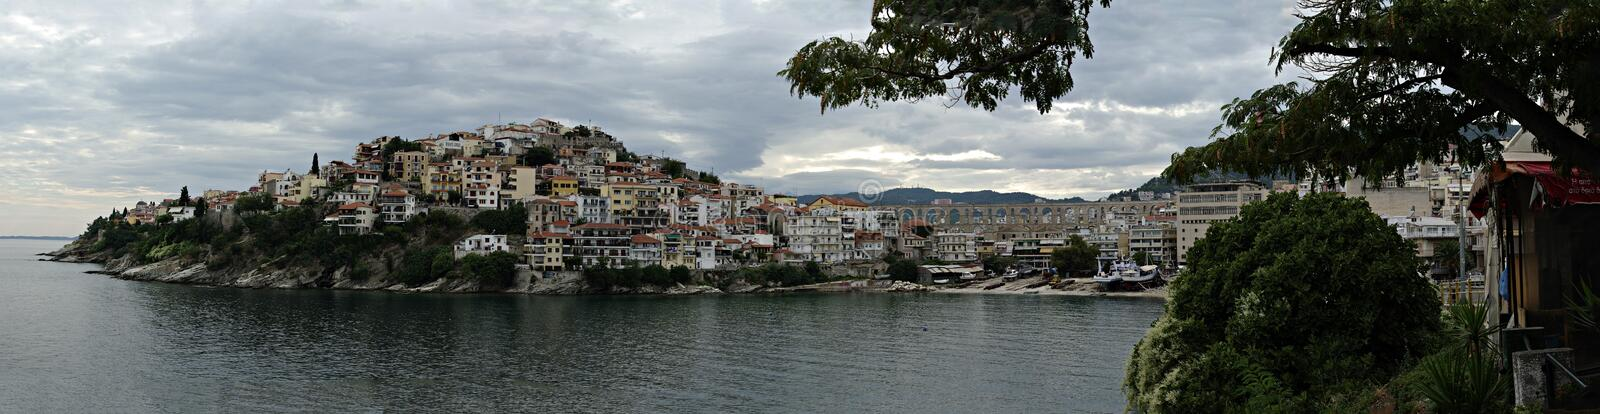 Kavala-Panorama stockfotos